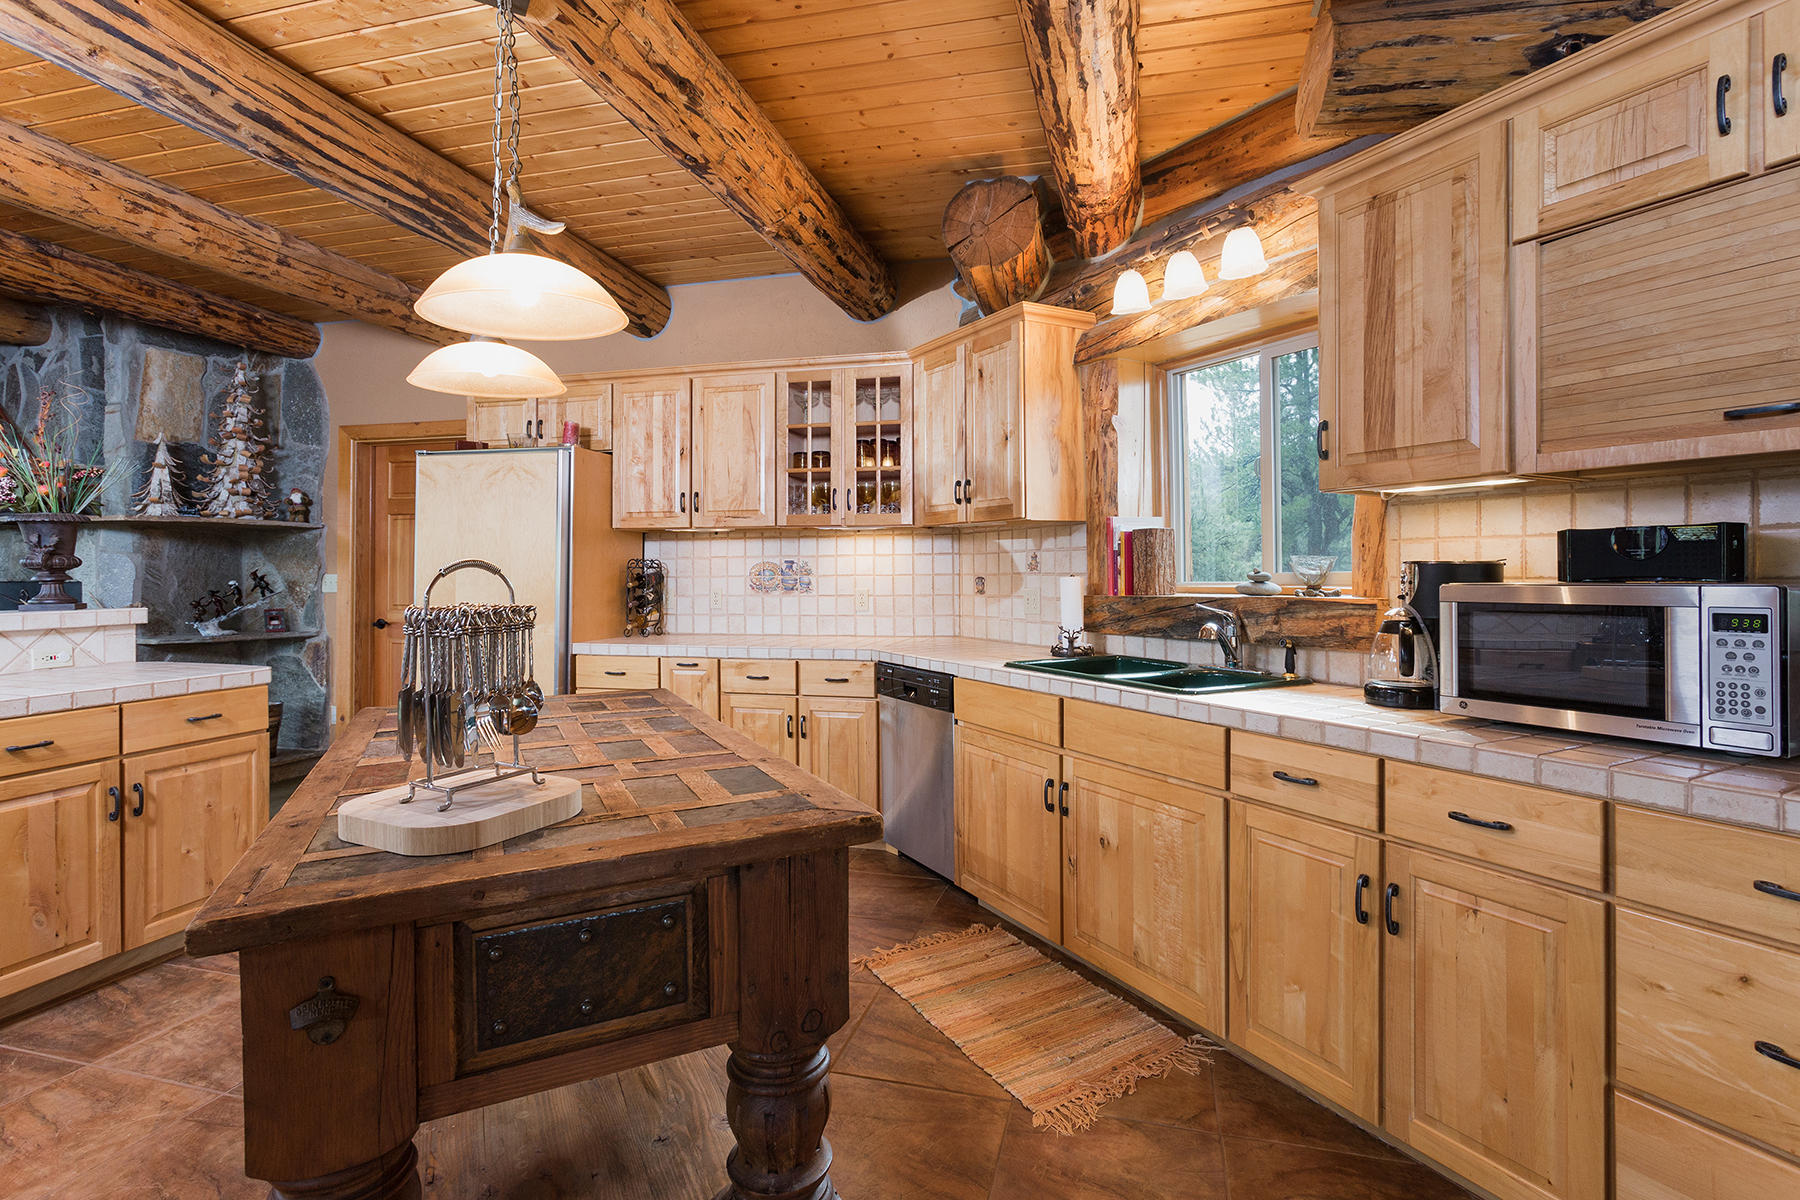 Additional photo for property listing at Rocking A Ranch 16295 W HWY 160 Durango, Colorado 81301 United States